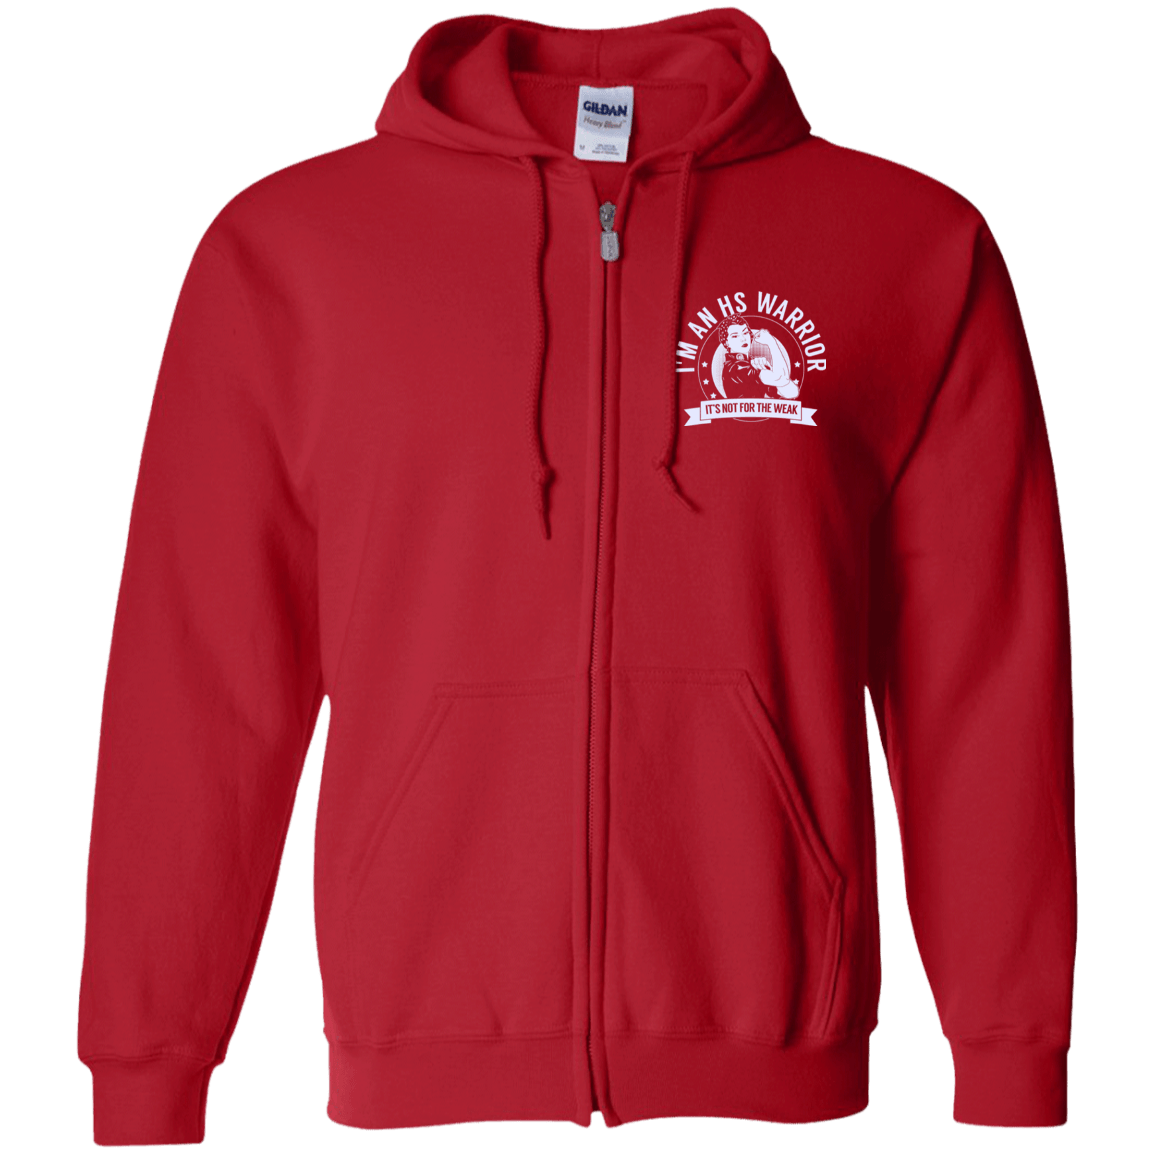 Hidradenitis Suppurativa - HS Warrior NFTW Zip Up Hooded Sweatshirt - The Unchargeables